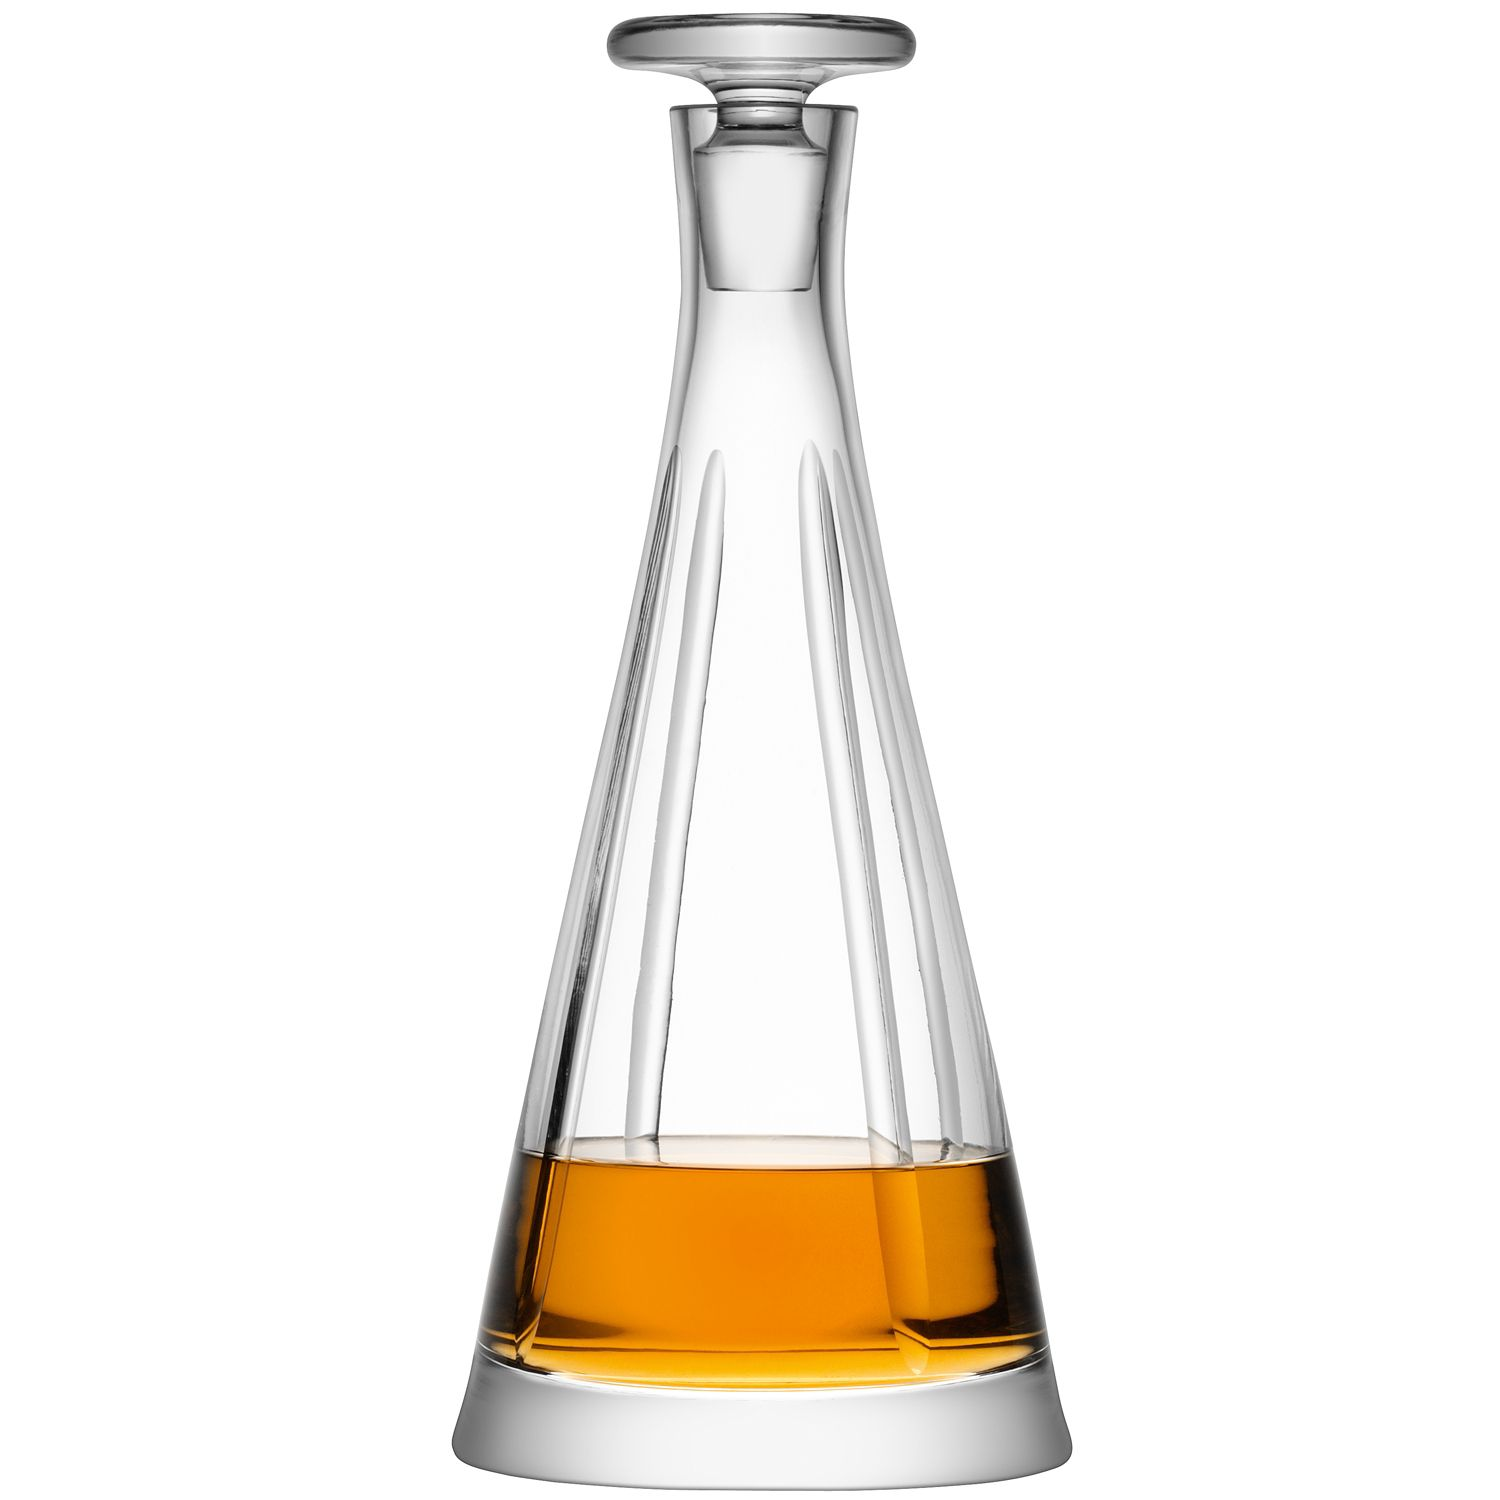 Charleston decanter 0.7L stripe cut